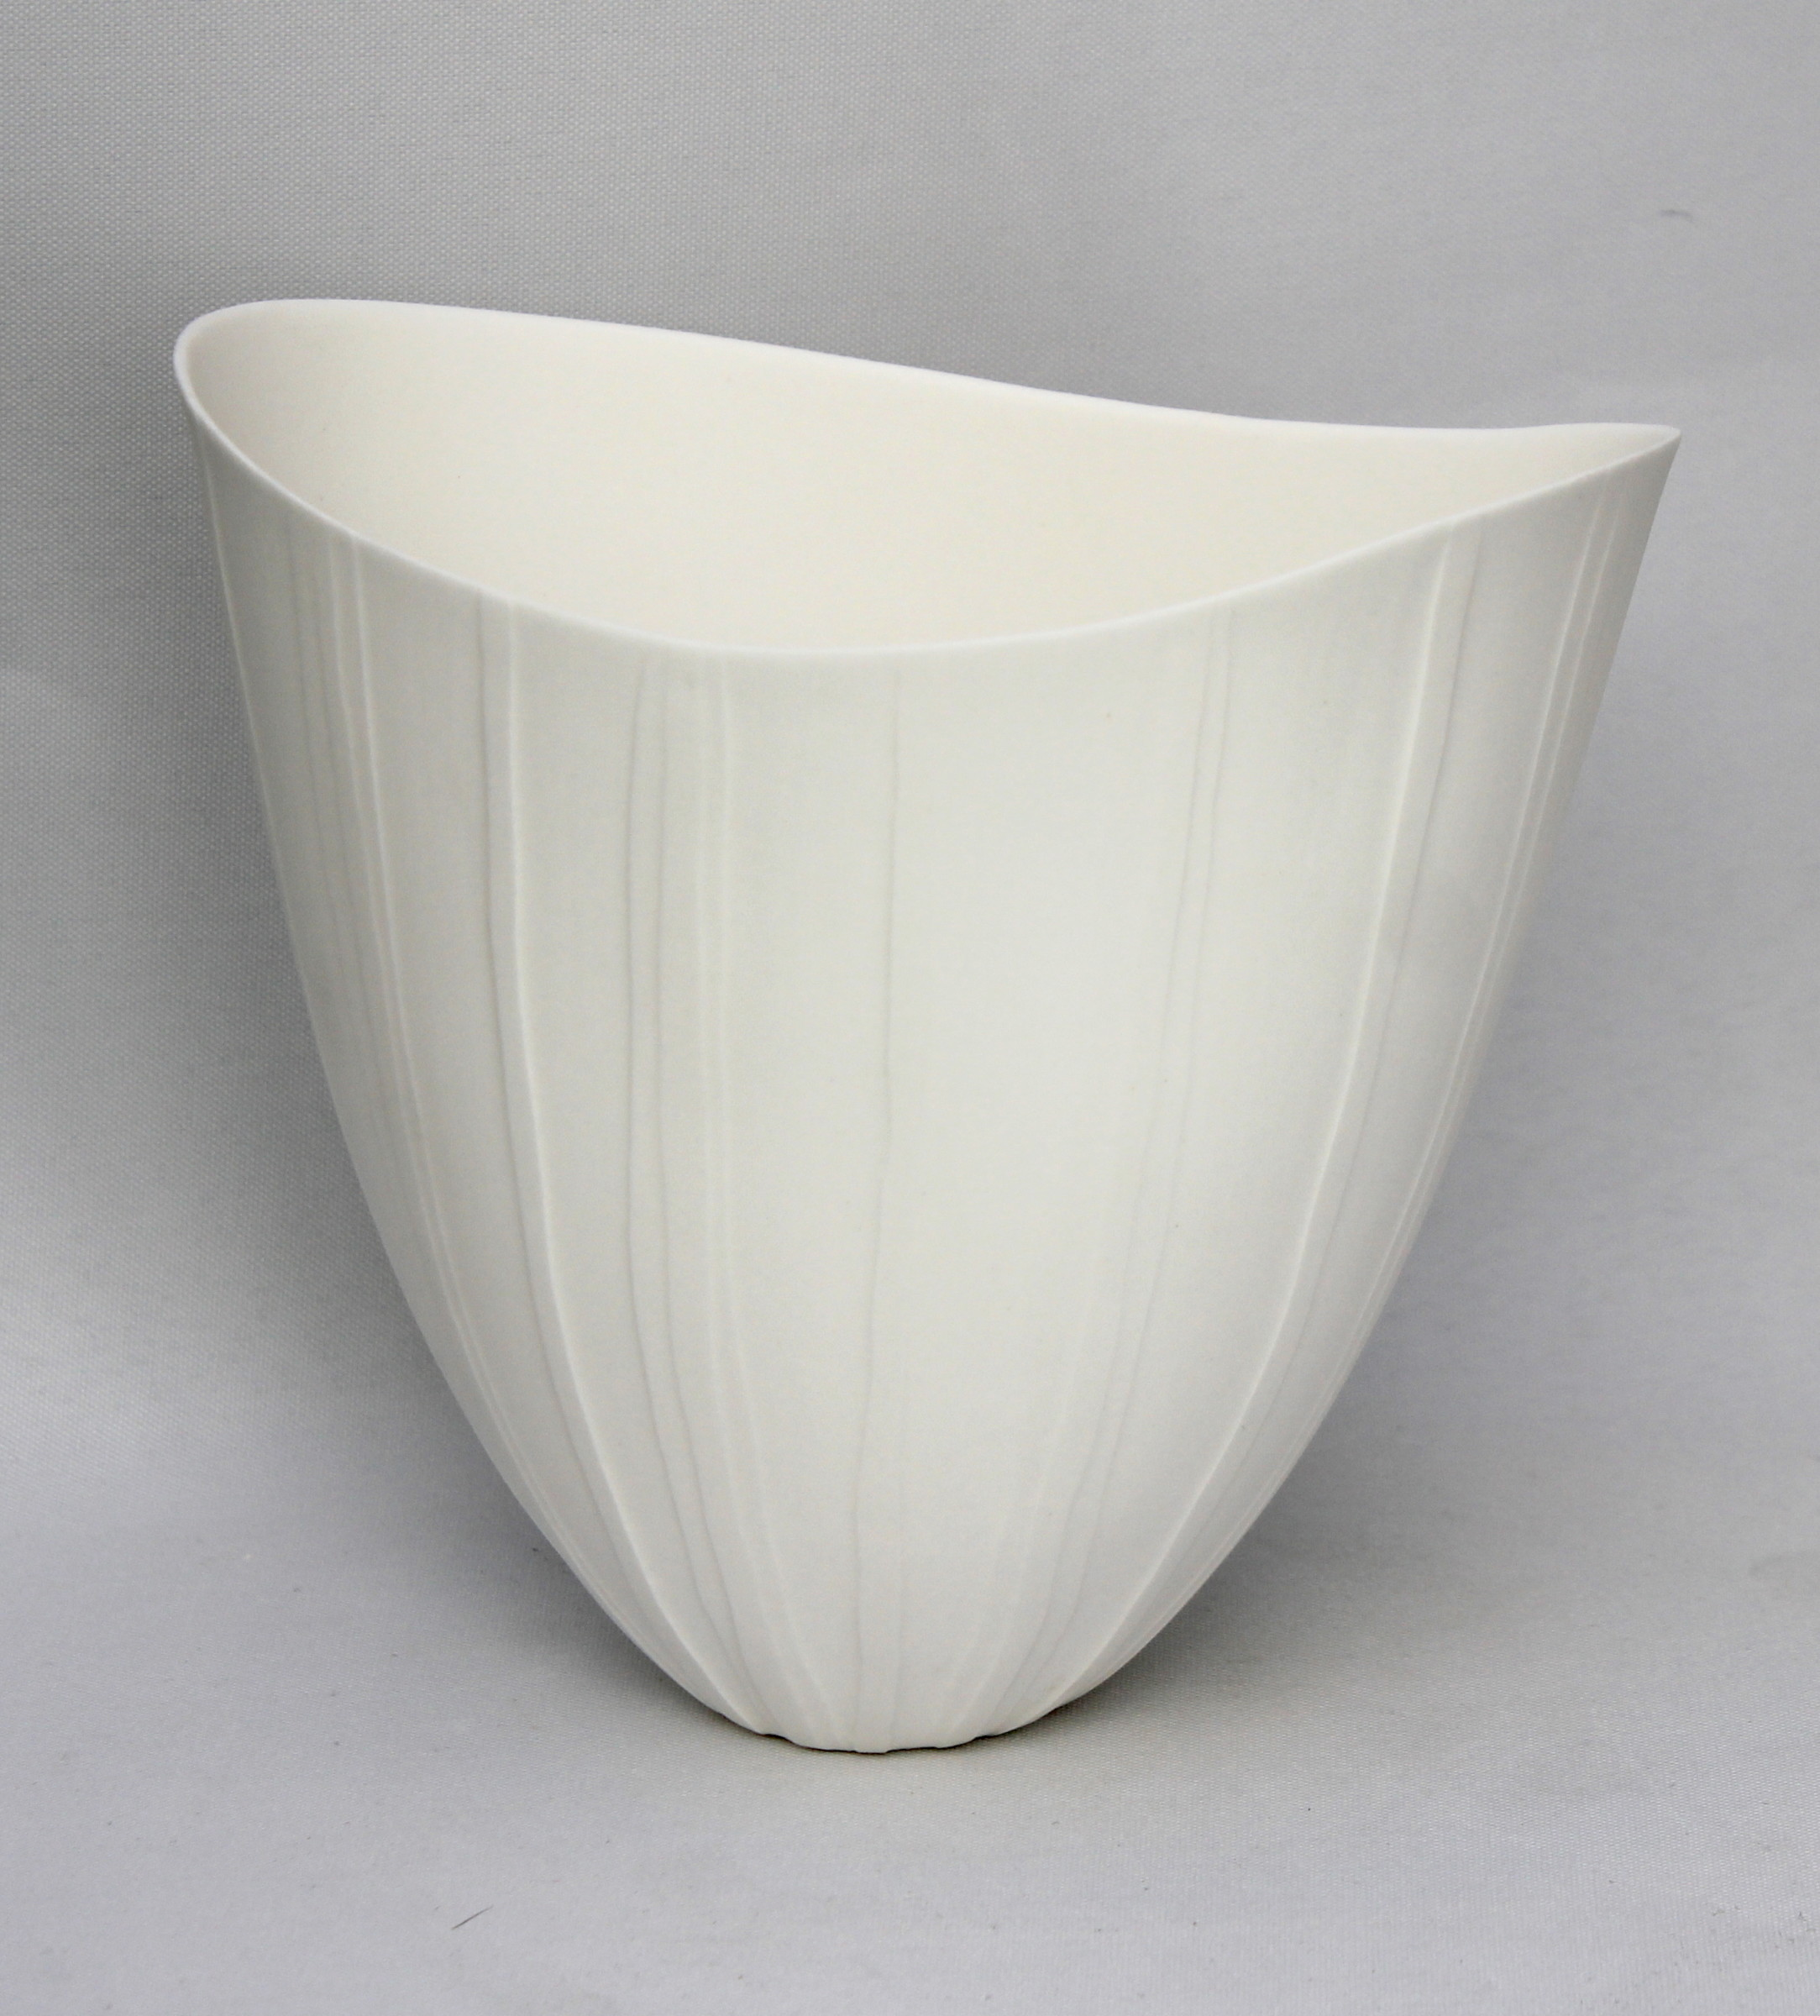 "<span class=""link fancybox-details-link""><a href=""/artists/60-sasha-wardell/works/4127-sasha-wardell-medium-ripple-vase-2017/"">View Detail Page</a></span><div class=""artist""><strong>Sasha Wardell</strong></div> <div class=""title""><em>Medium Ripple Vase</em>, 2017</div> <div class=""signed_and_dated"">inscribed with artist initials on base</div> <div class=""medium"">layered and sliced bone china</div> <div class=""dimensions"">h. 18 x w. 18 cm</div><div class=""copyright_line"">OwnArt: £ 19 x 10 Months, 0% APR</div>"